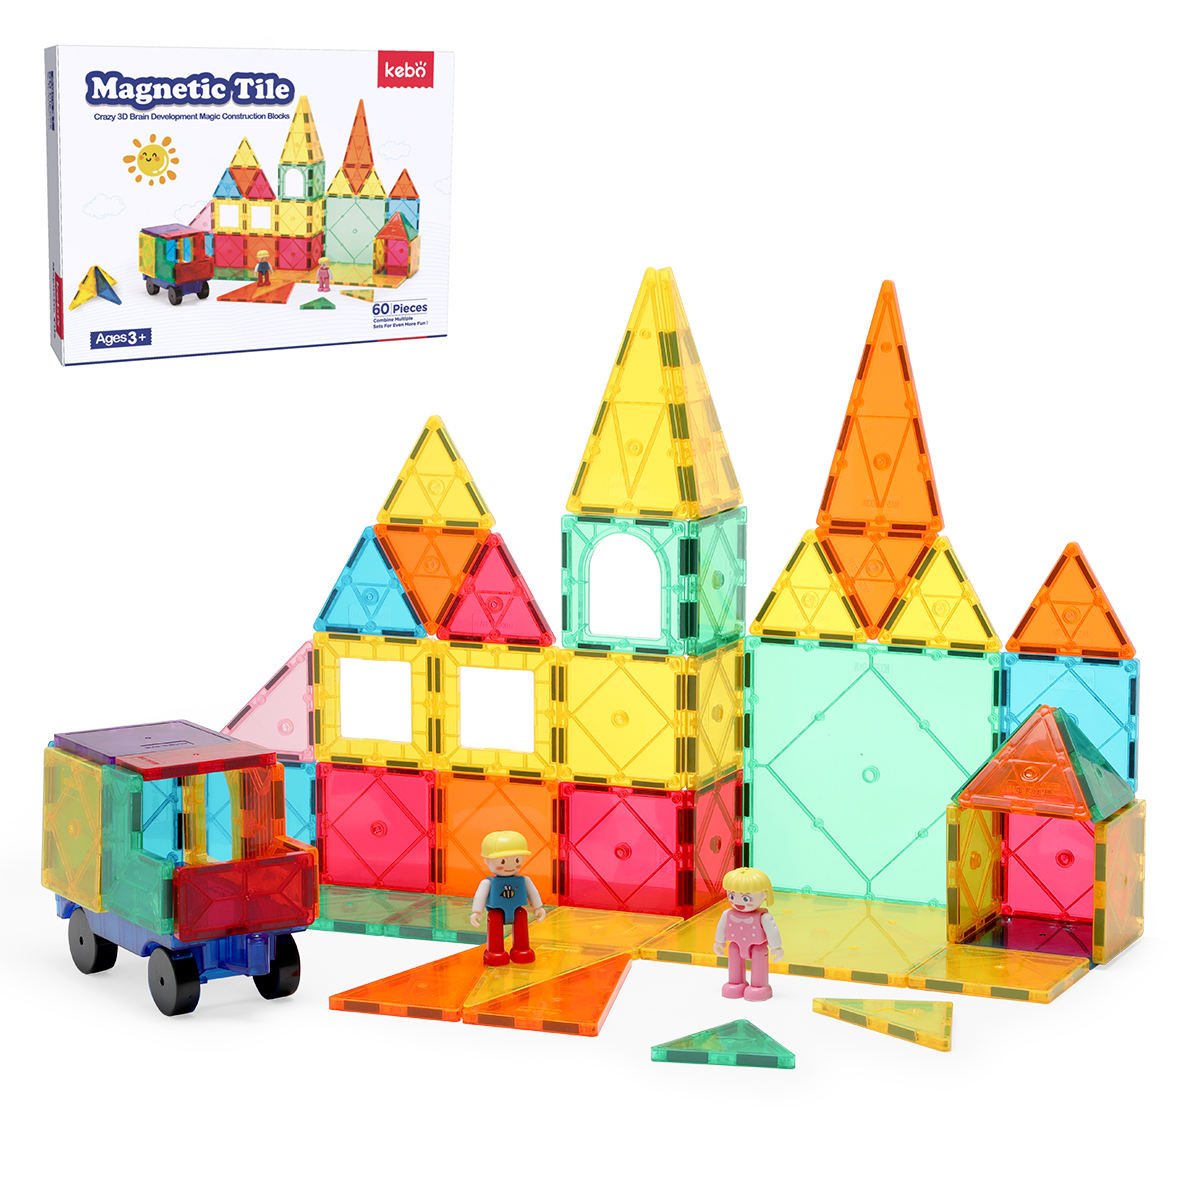 Amazon hot selling educational magnetic tiles building blocks plastic construction toys for kids